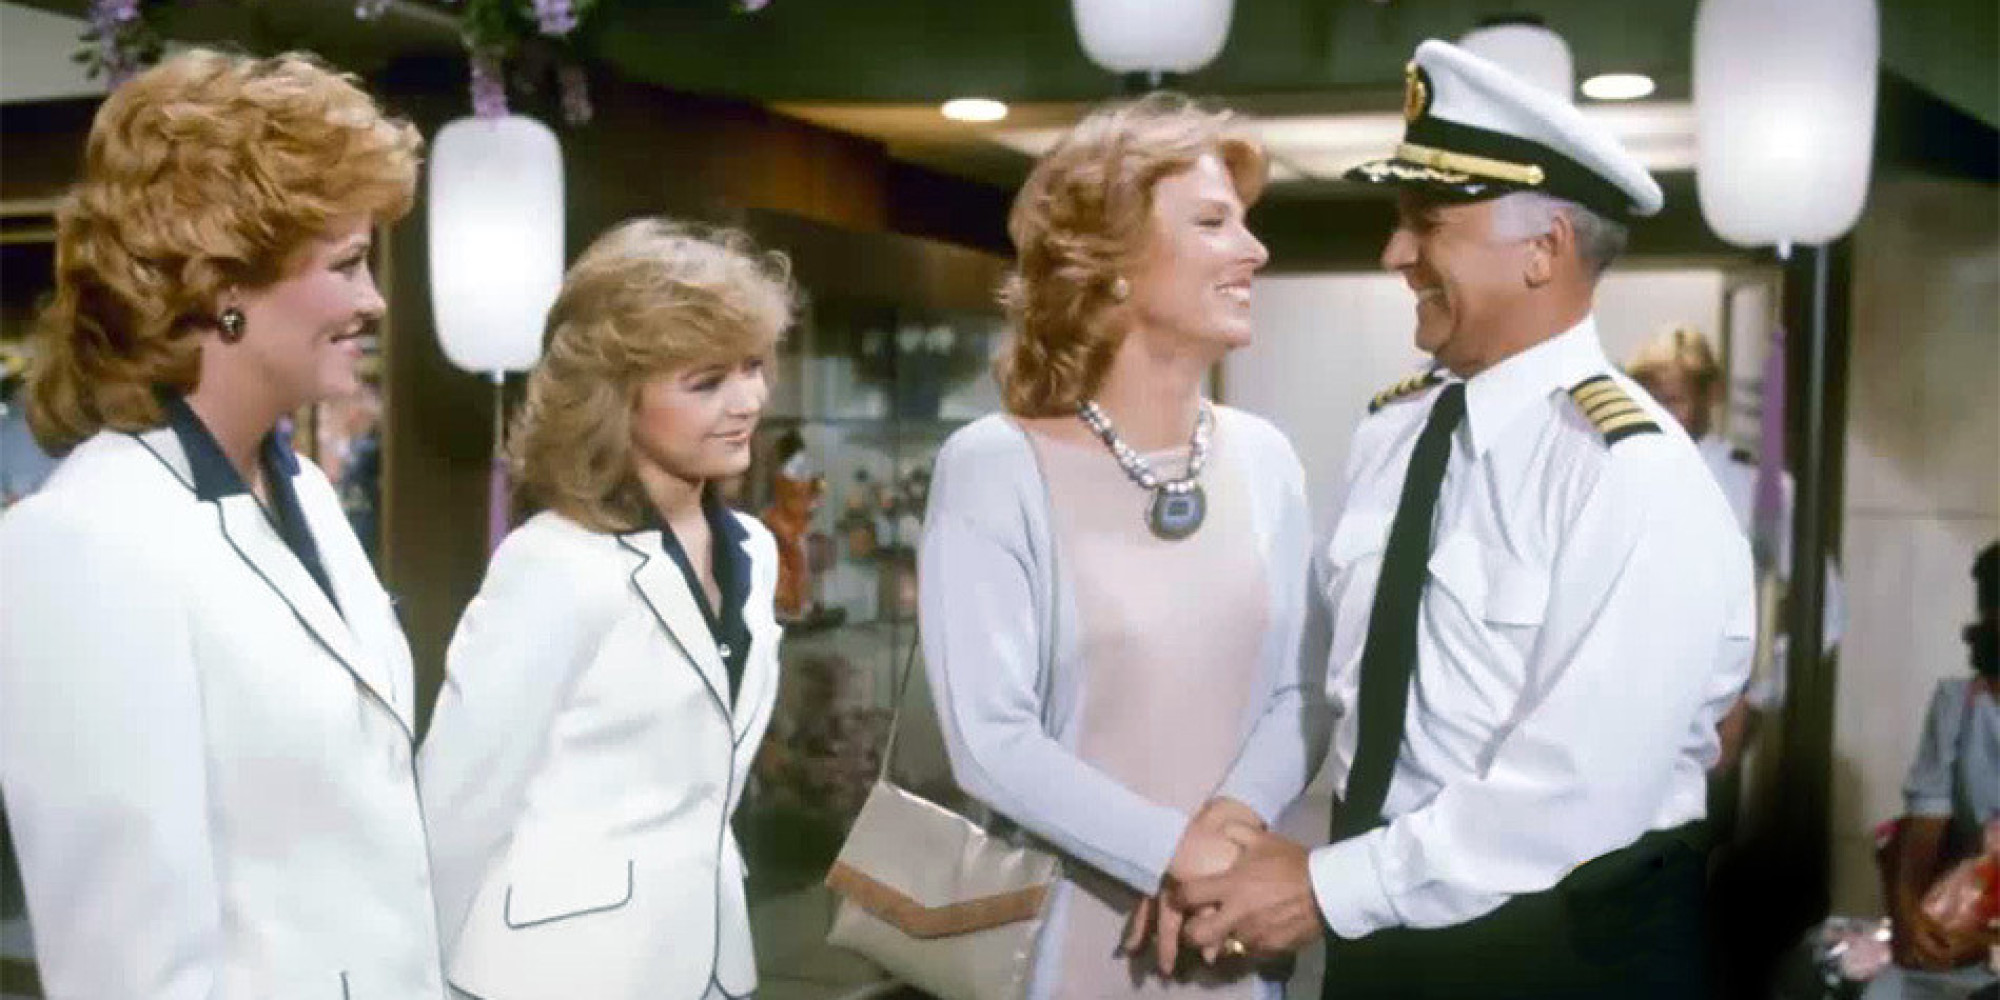 The Love Boat Cruise Director Says Show Was About Free Sex Video Huffpost